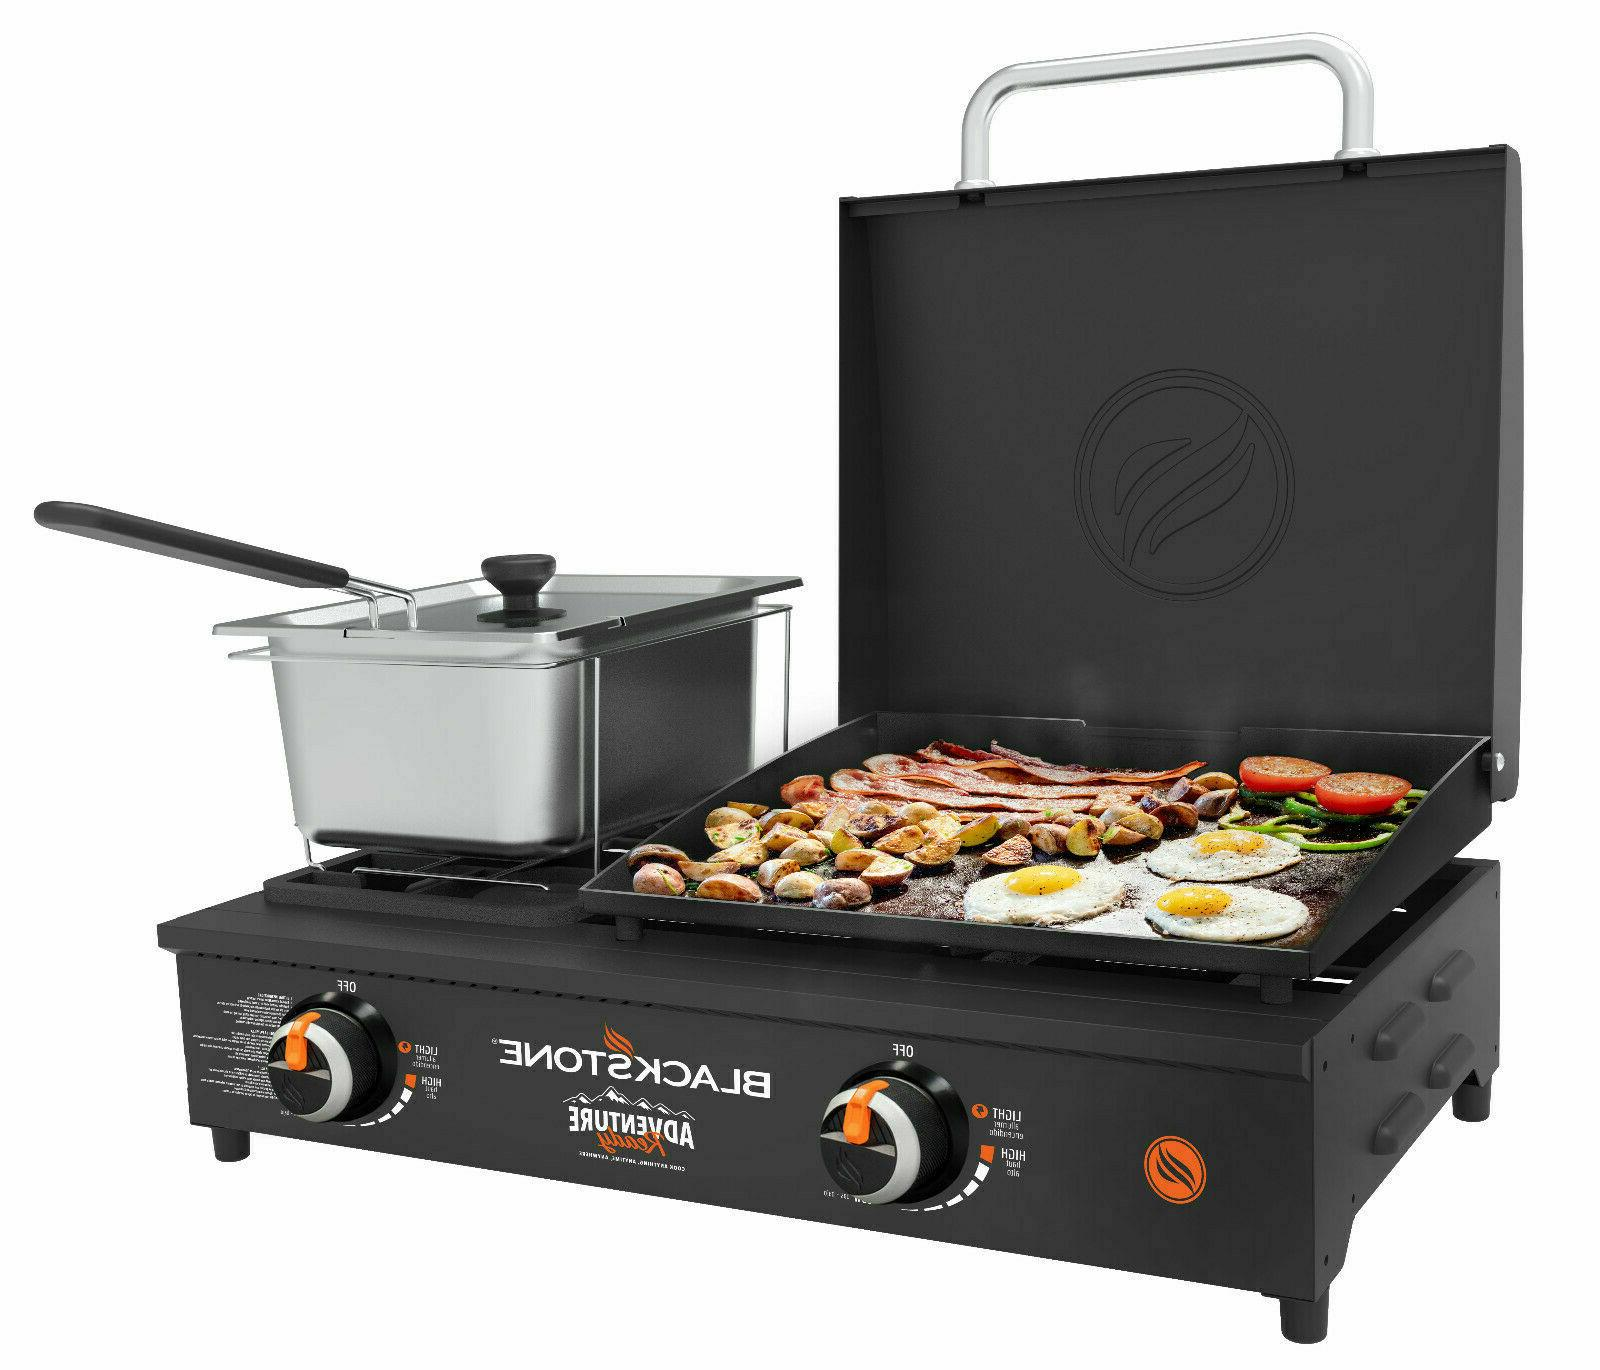 large portable grill tabletop cooking stovetop burner